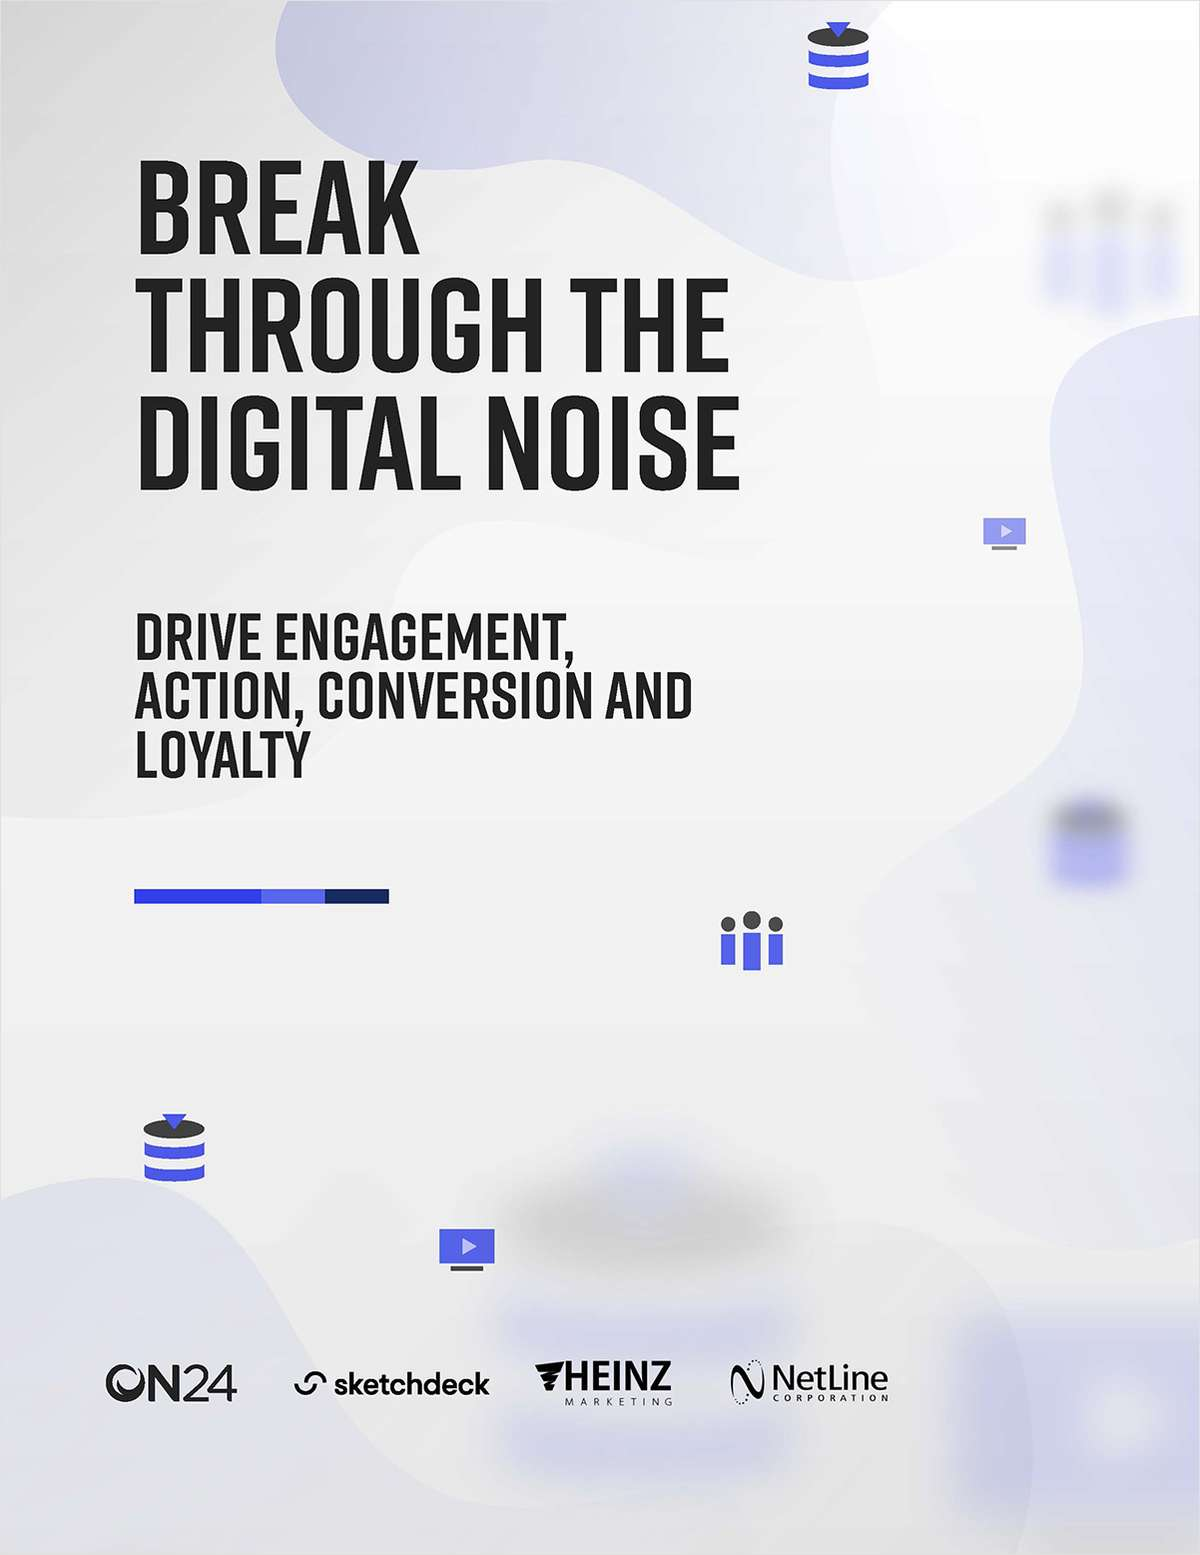 Break Through the Digital Noise: Drive Engagement, Action, Conversion and Loyalty